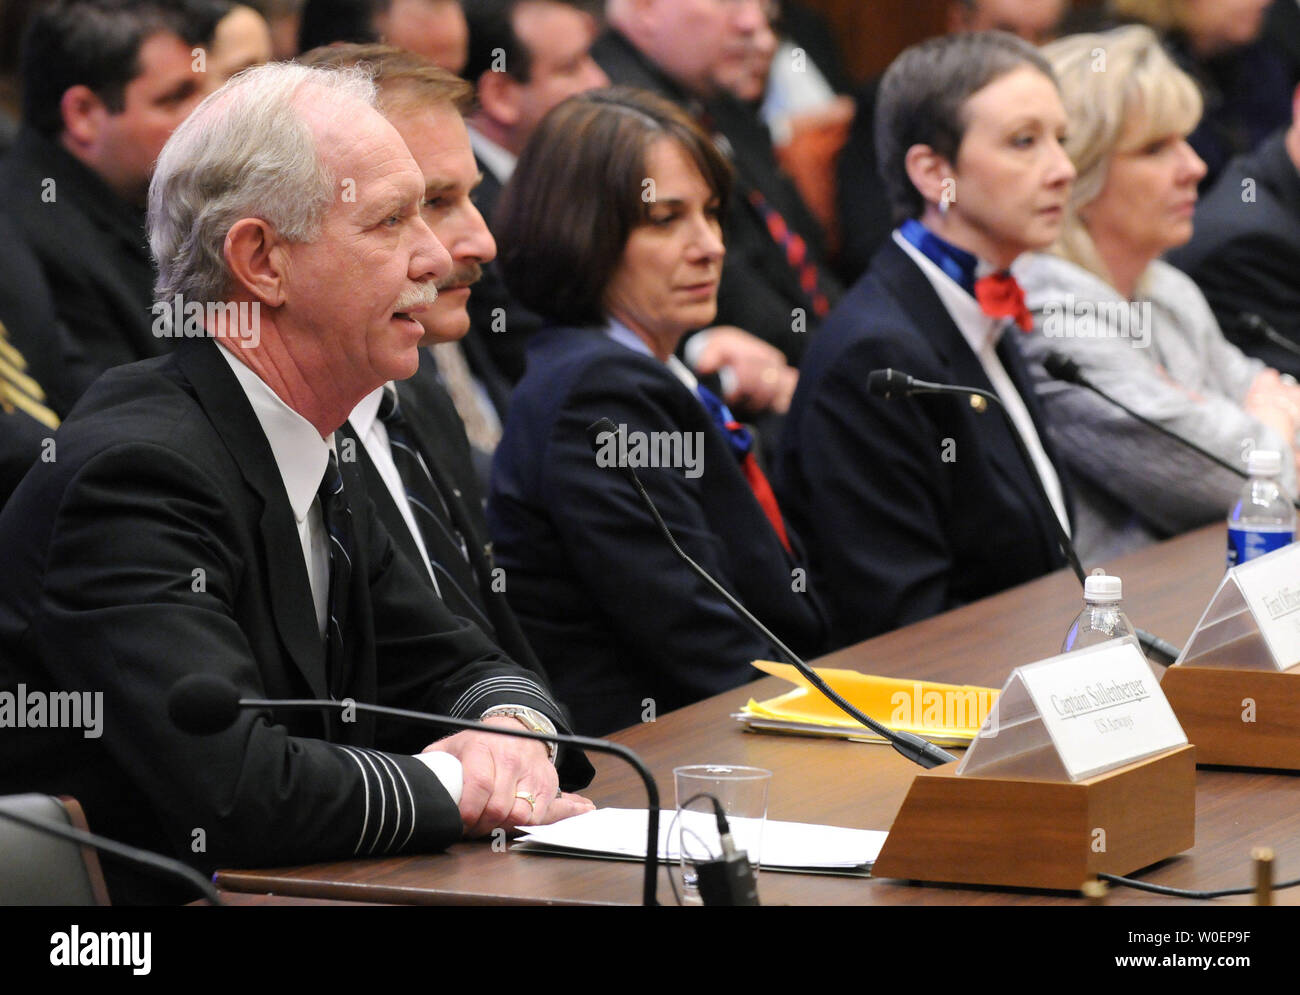 The pilots and crew of US Airways Flight 1549, from left to right, Captain Chesley Sullenberger III, First Officer Jeffrey Skiles, flight attendants Sheila Dail, Donna Dent, and Doreen Welsh testify before a House Aviation Subcommittee hearing on the US Airways Flight 1549 accident, in Washington on February 24, 2009.  US Airways Flight 1549 crash landed in the Hudson River off of New York City on January 18, five minutes after takeoff from LaGuardia International Airport, there were no casualties. (UPI Photo/Kevin Dietsch) - Stock Image